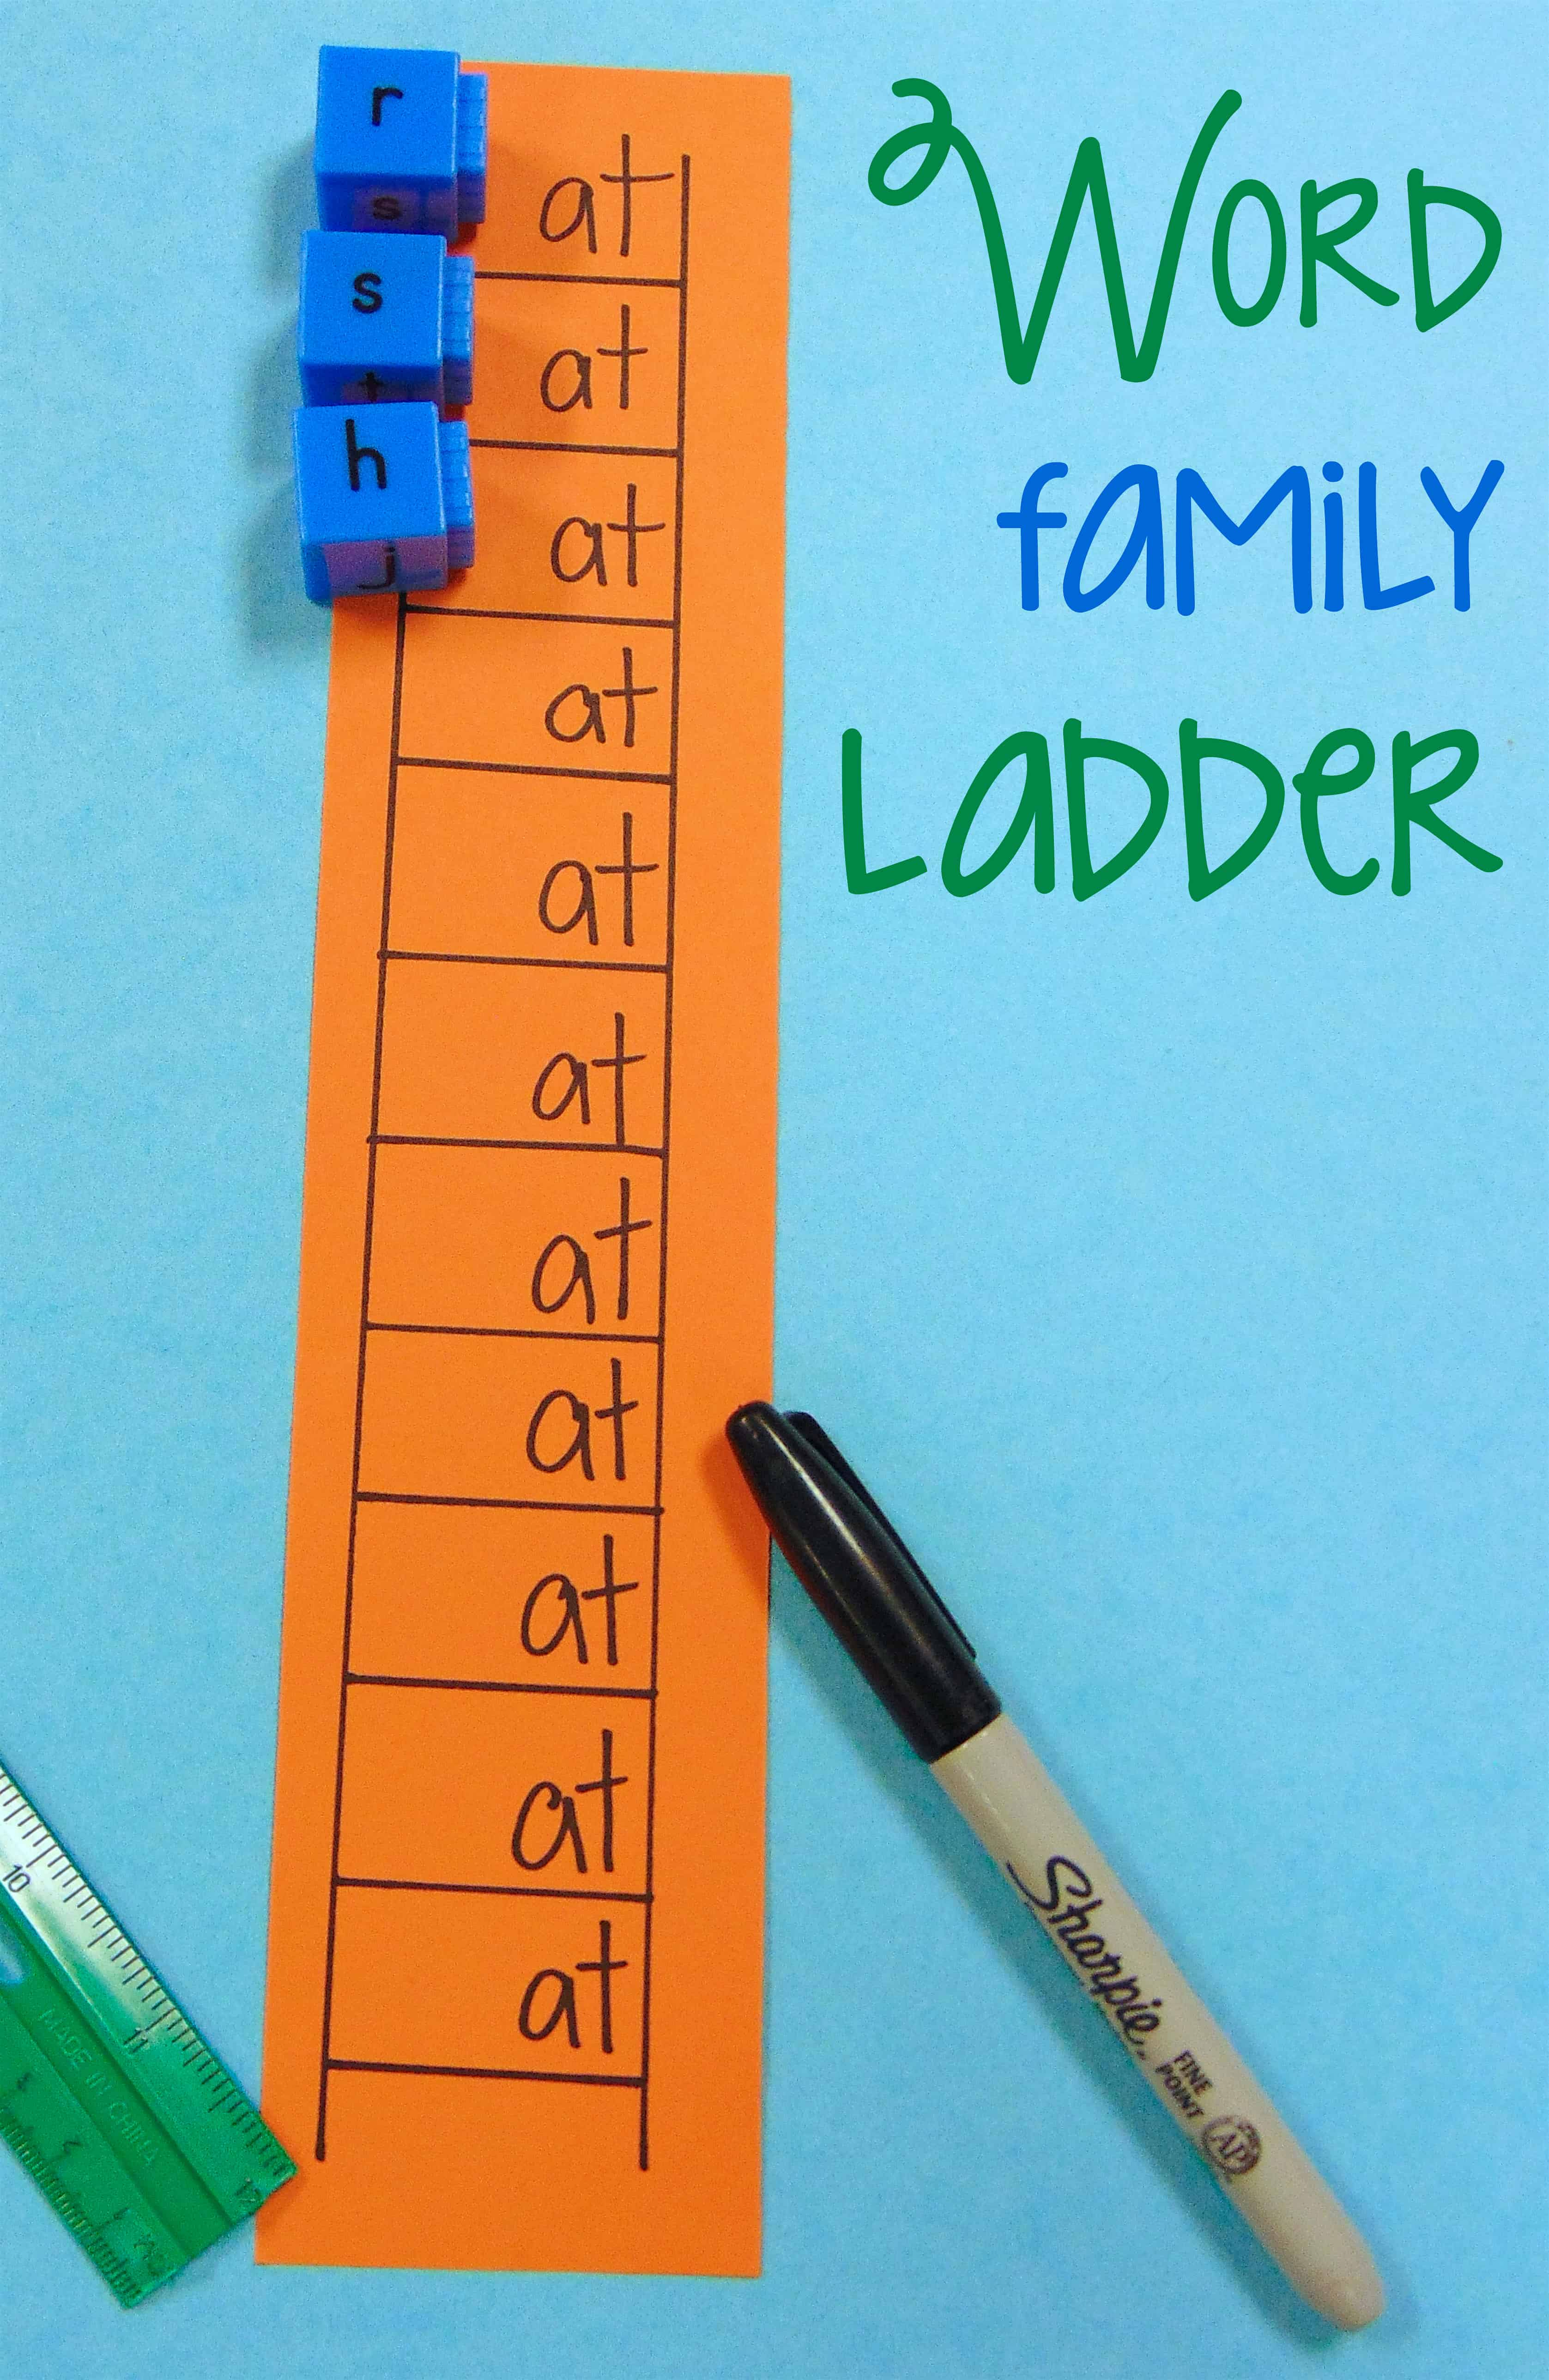 DIY Word Family Ladder Center Activity Classroom Hack